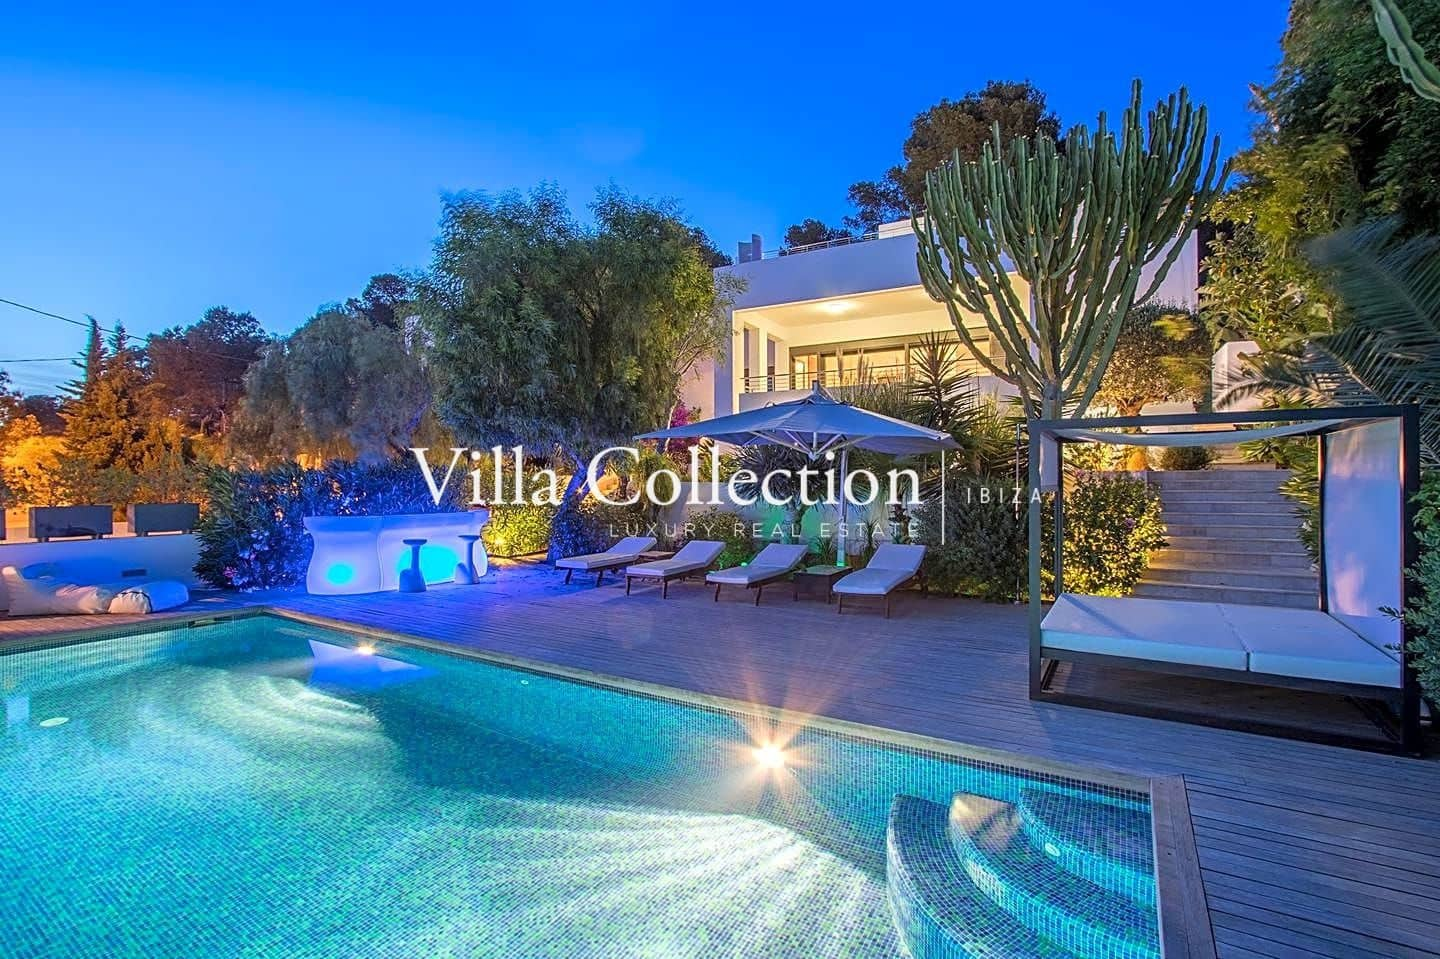 5 bedroom Villa for holiday rental in Ibiza / Eivissa town with pool - € 17,000 (Ref: 5063060)